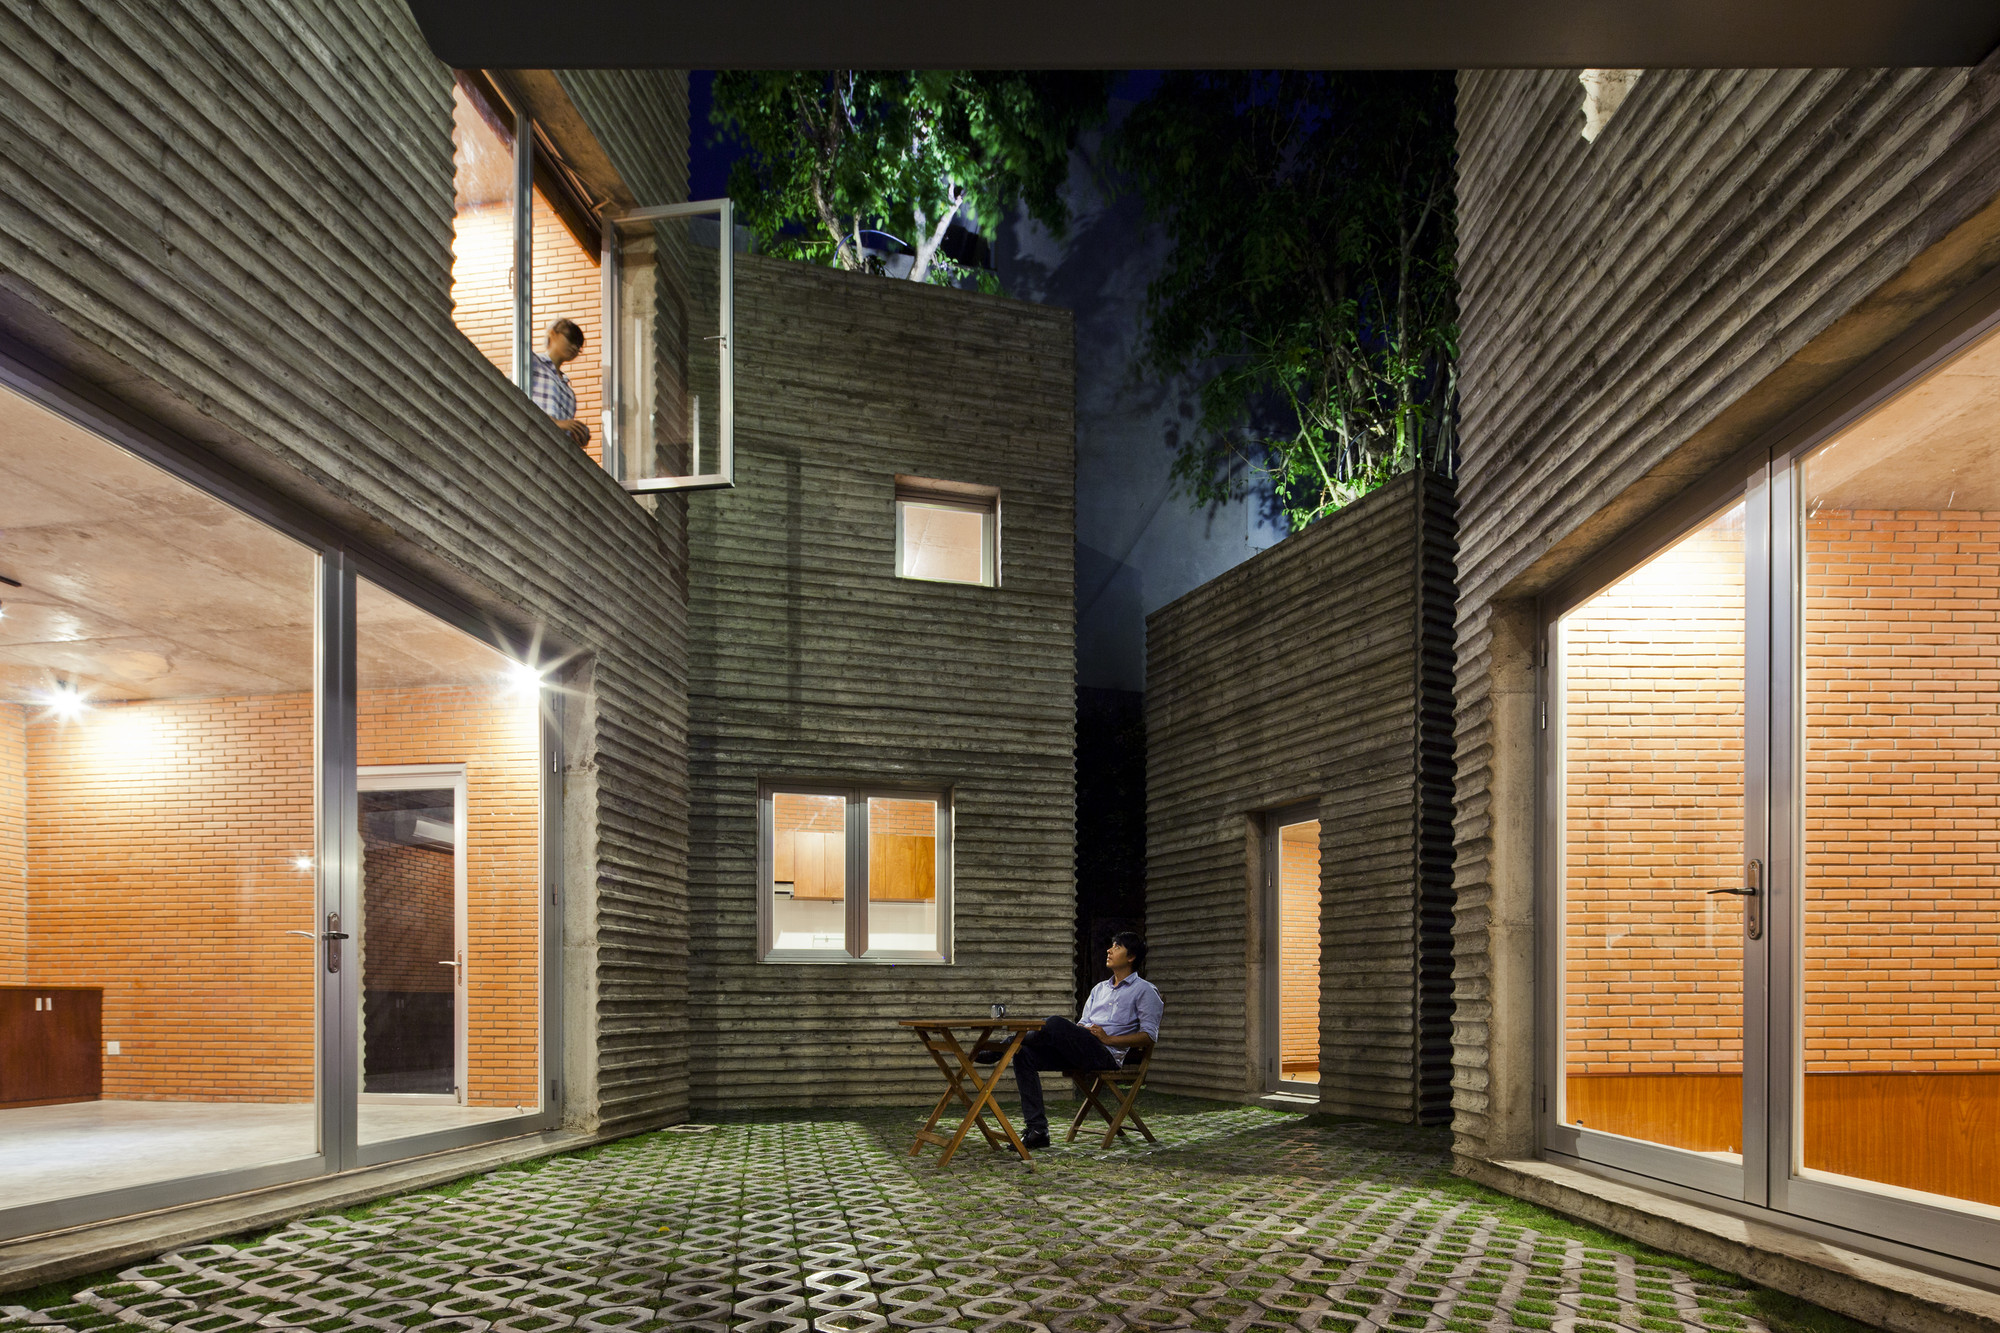 House for Trees / Vo Trong Nghia Architects. Imagen cortesía de WAF